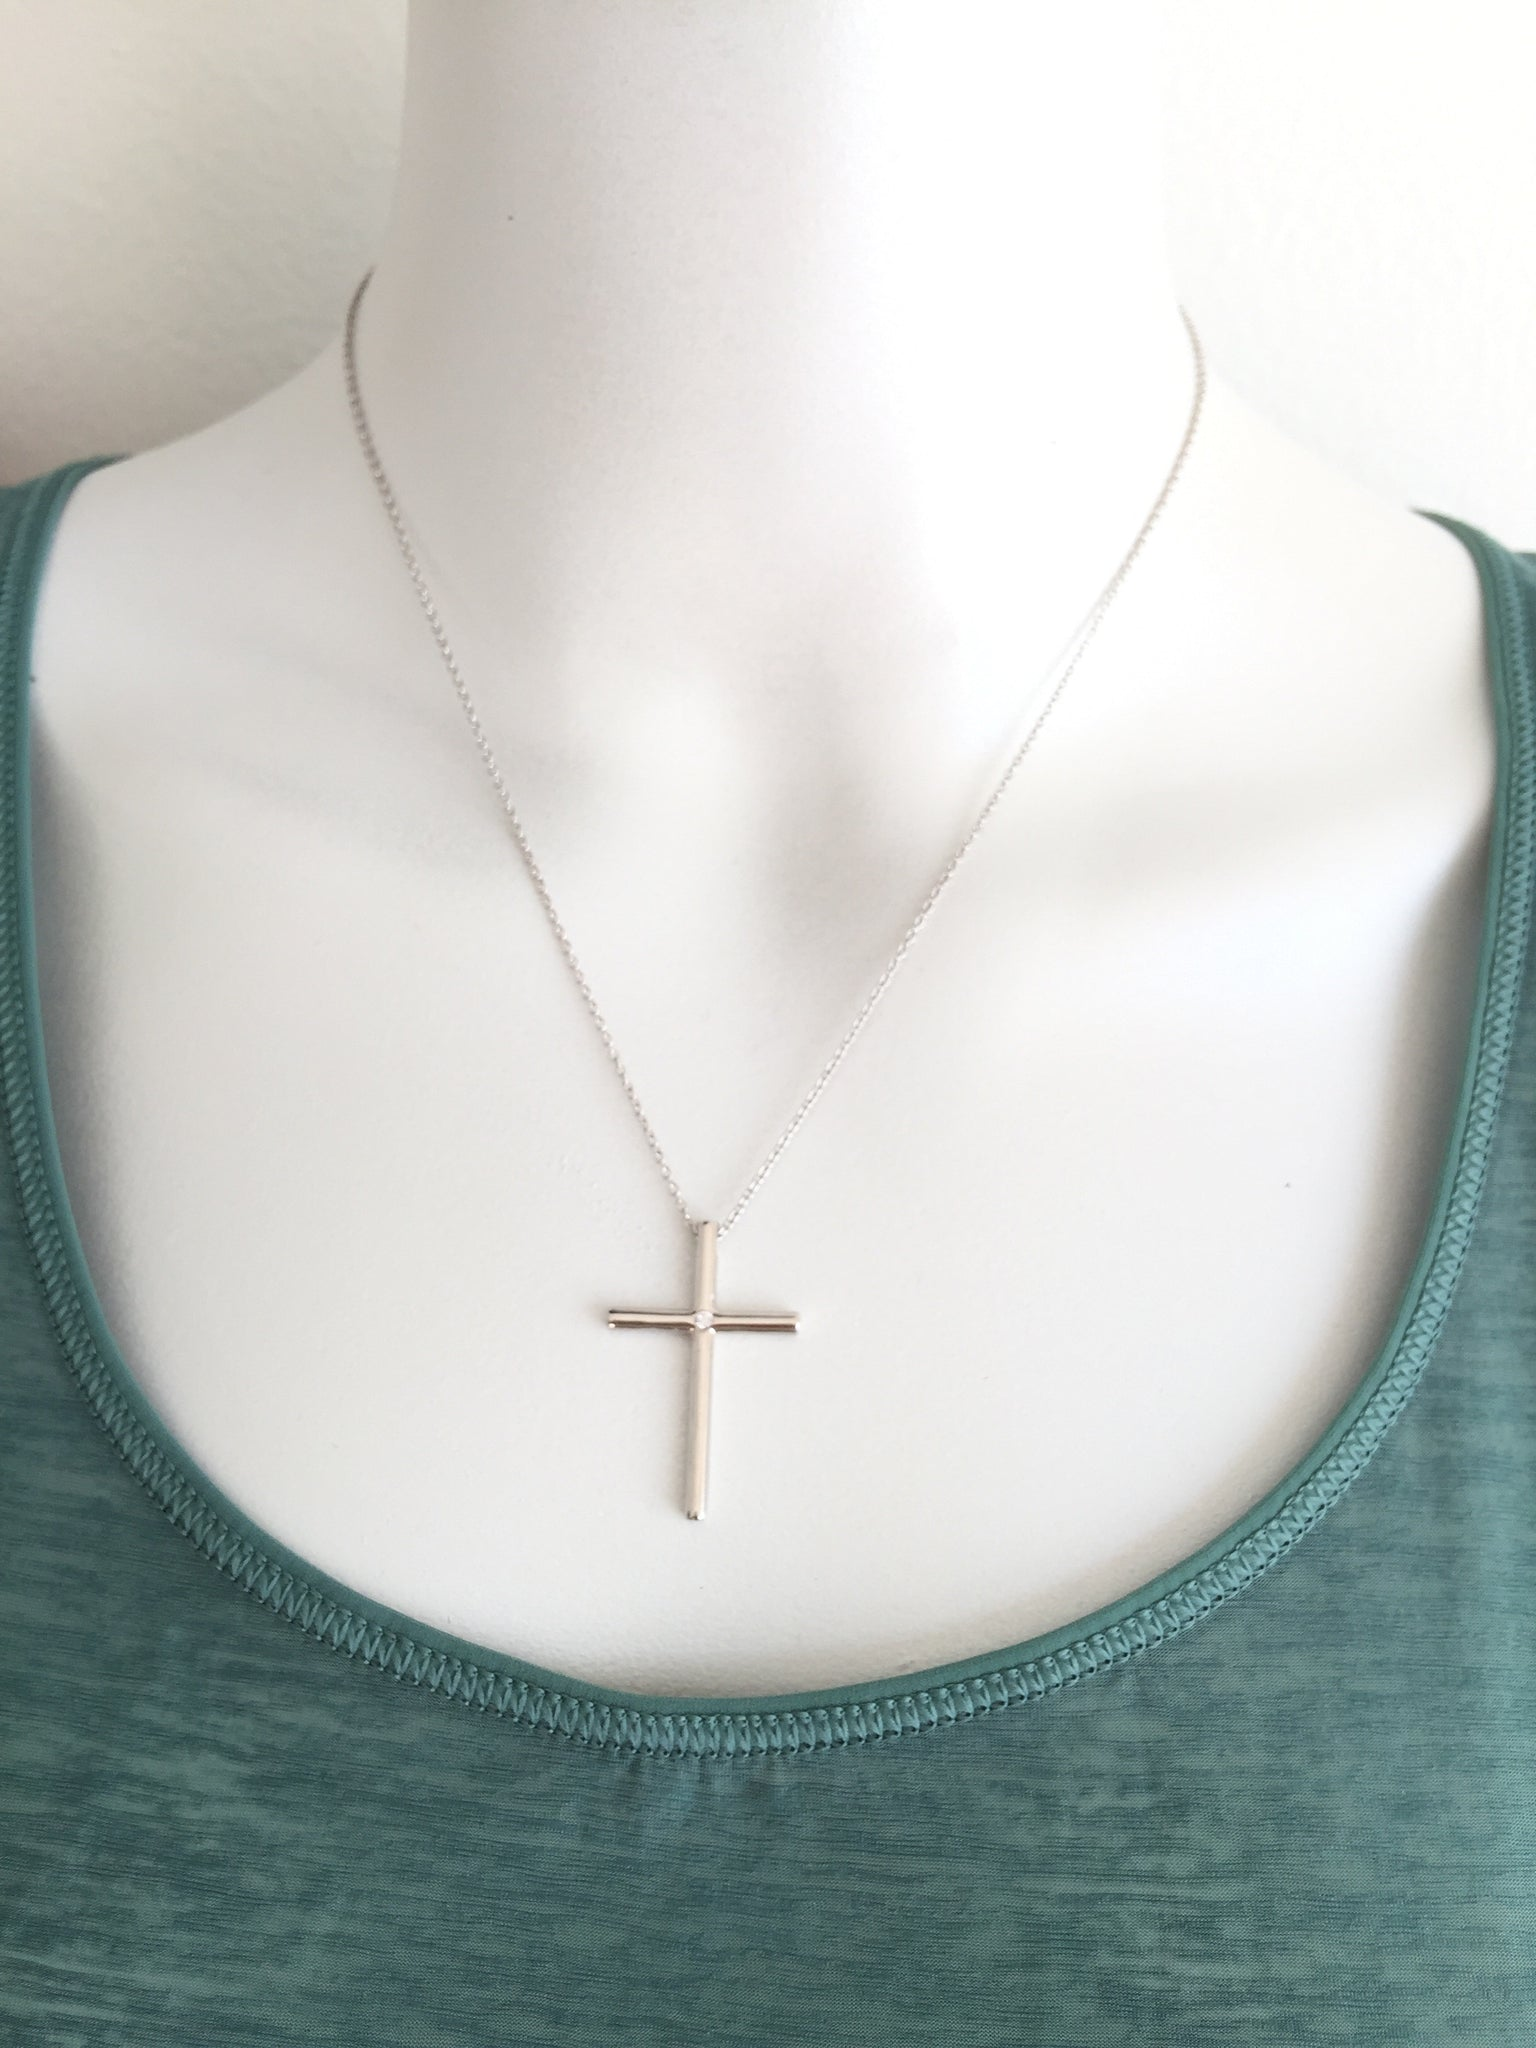 Tiffany &Co. cross diamond pendant necklace